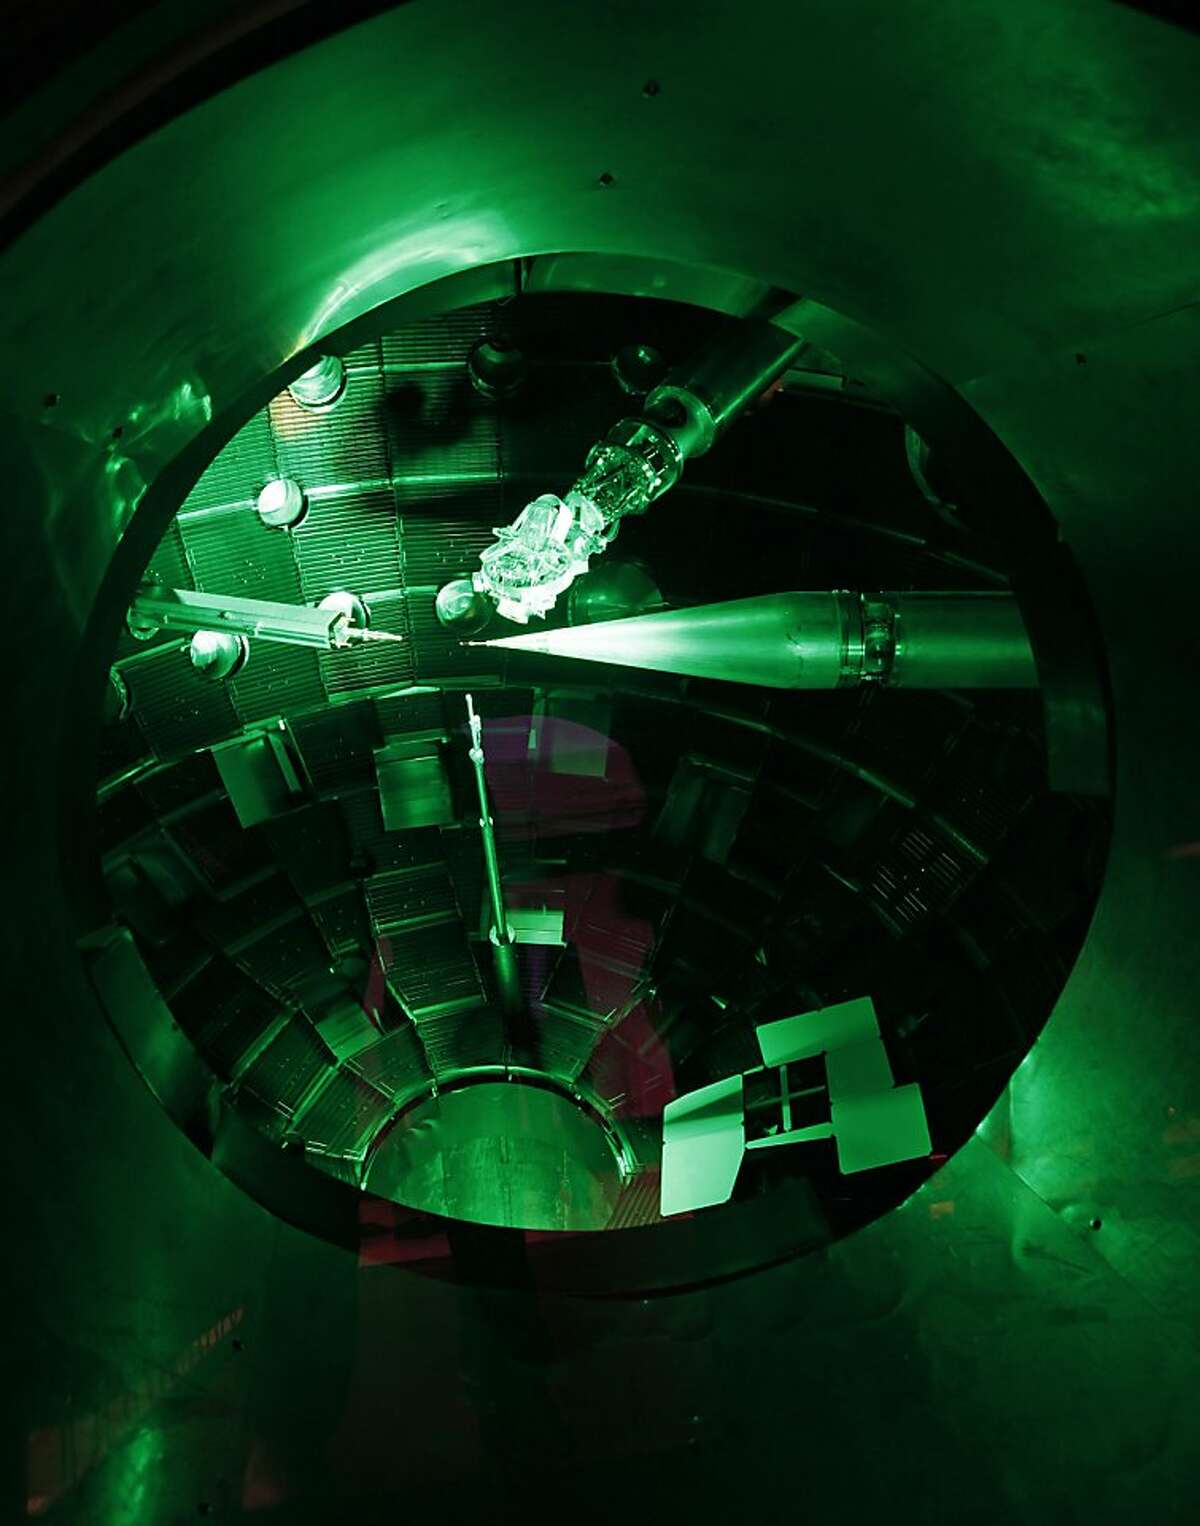 Inside the target chamber where a small gold container the size of a pencil eraser is the focus of 192 laser beams.The Lawrence Livermore National Laboratory dedicates the National Ignition facility in Livermore, Calif. on Friday May 29, 2009.